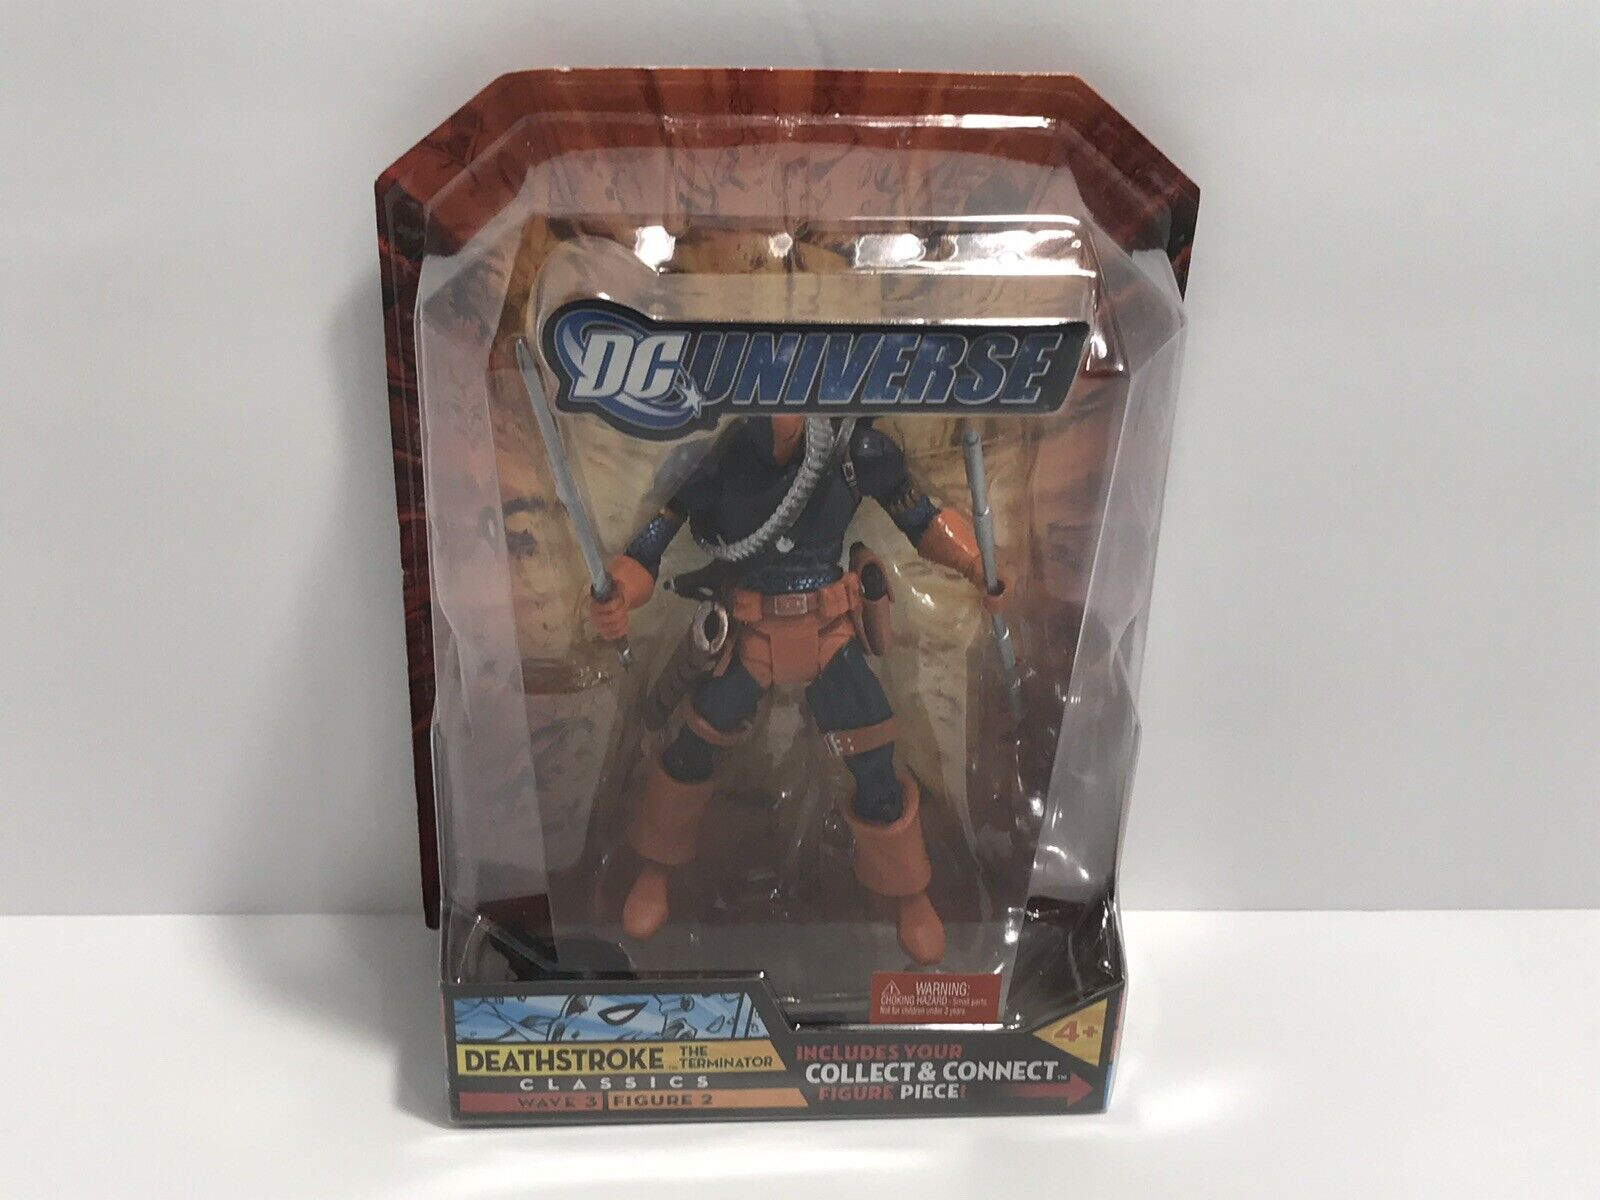 DC Universe Classics Deathstroke (Masked Variant) Wave 3 Figure 2 Solomon Grundy